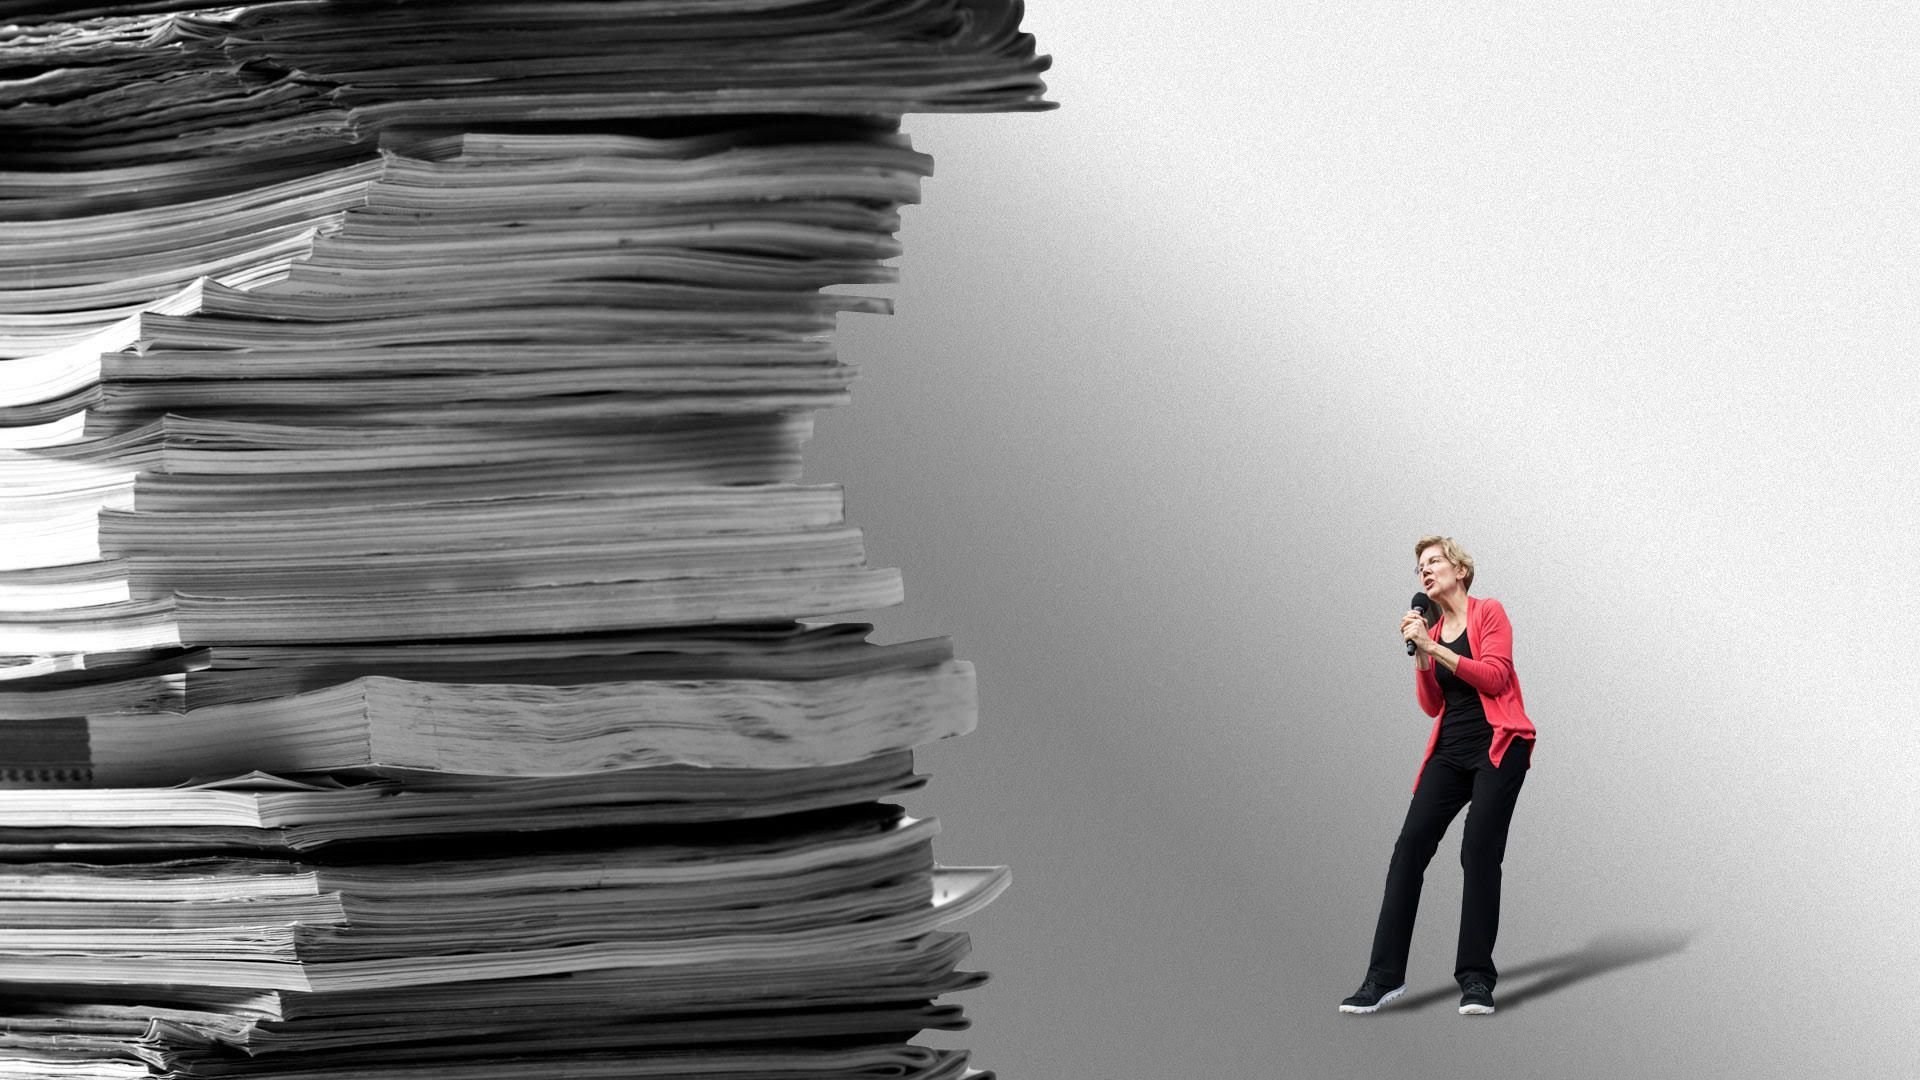 Illustration of a stack of papers towering over 2020 candidate Elizabeth Warren